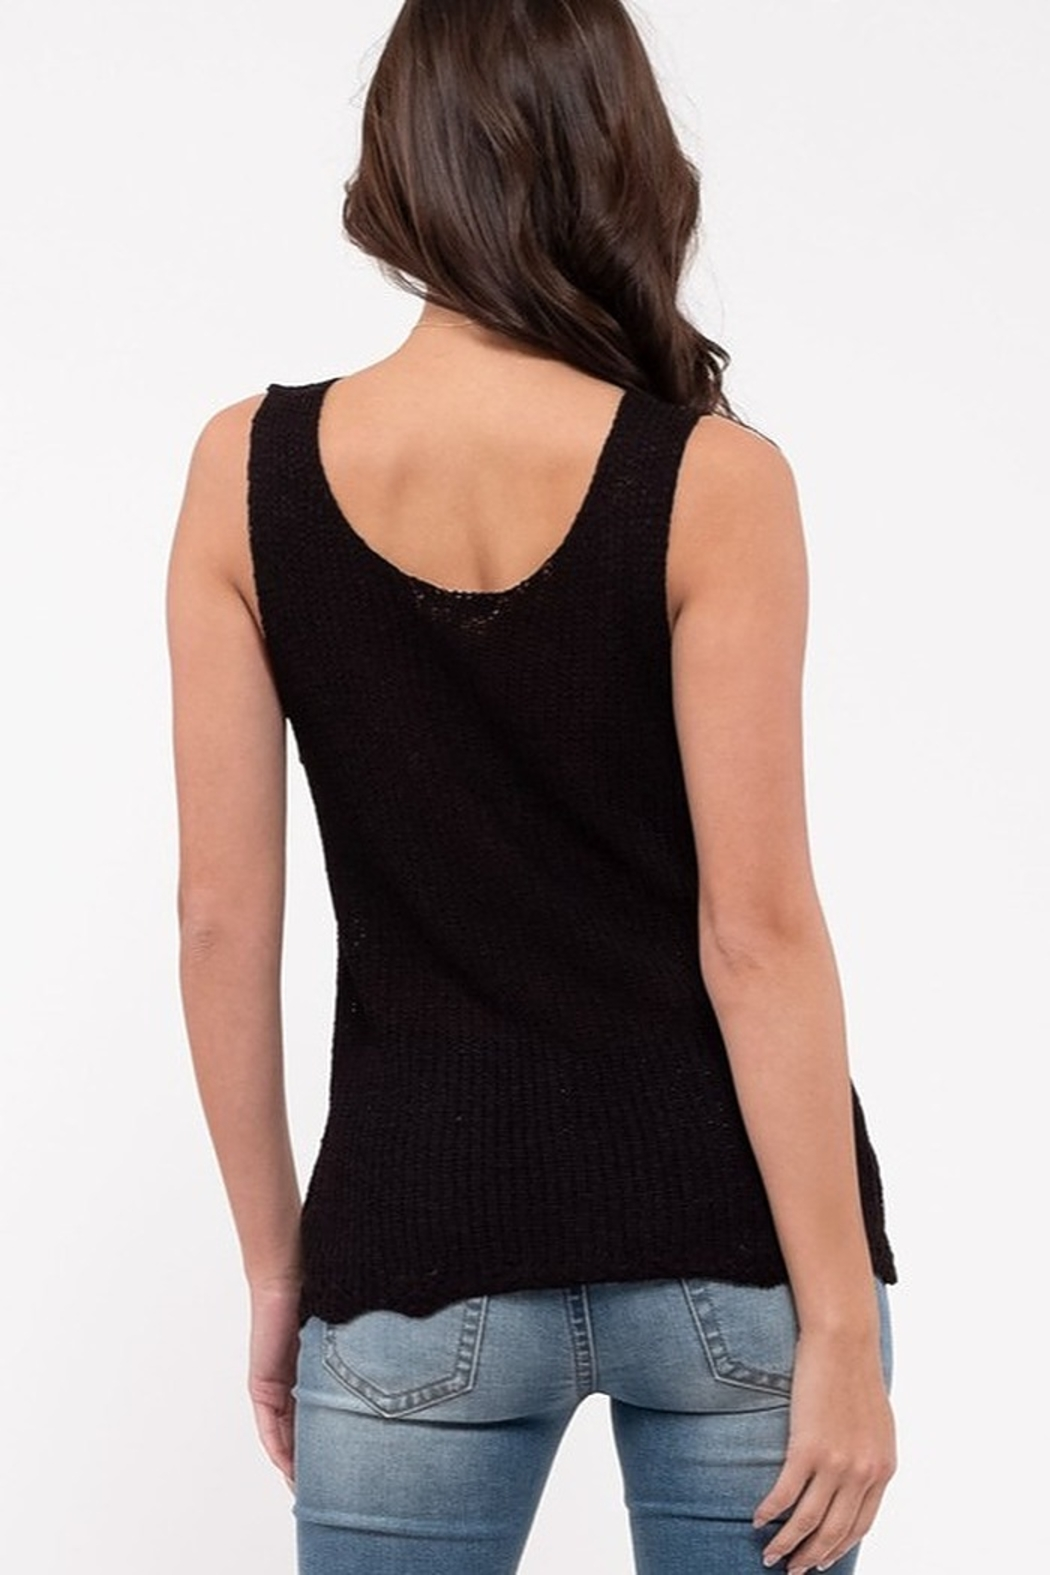 blu Pepper  Knit Tank Top - Front Full Image